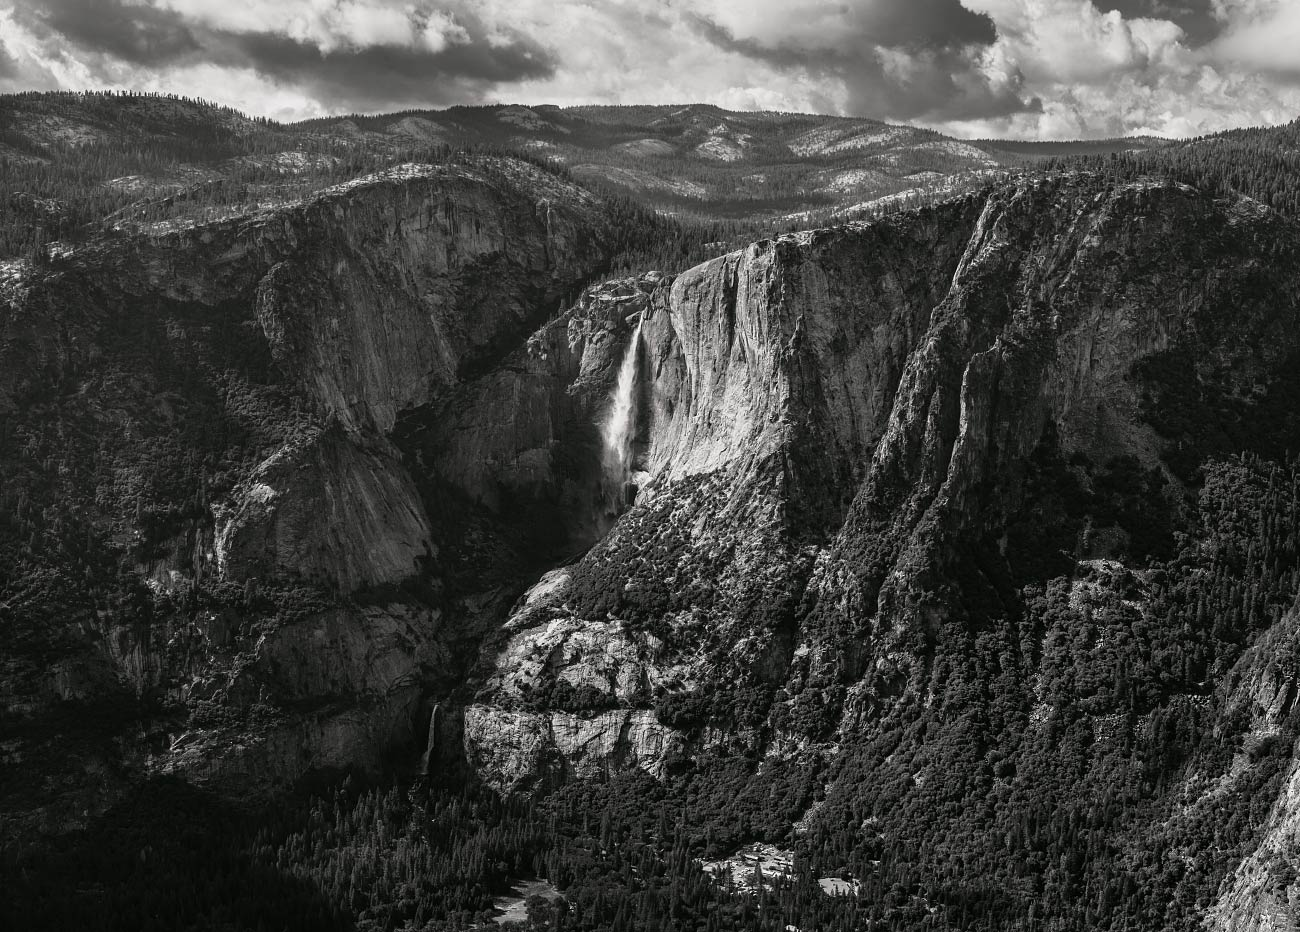 View of Upper and Lower Yosemite Falls from Glacier Point.